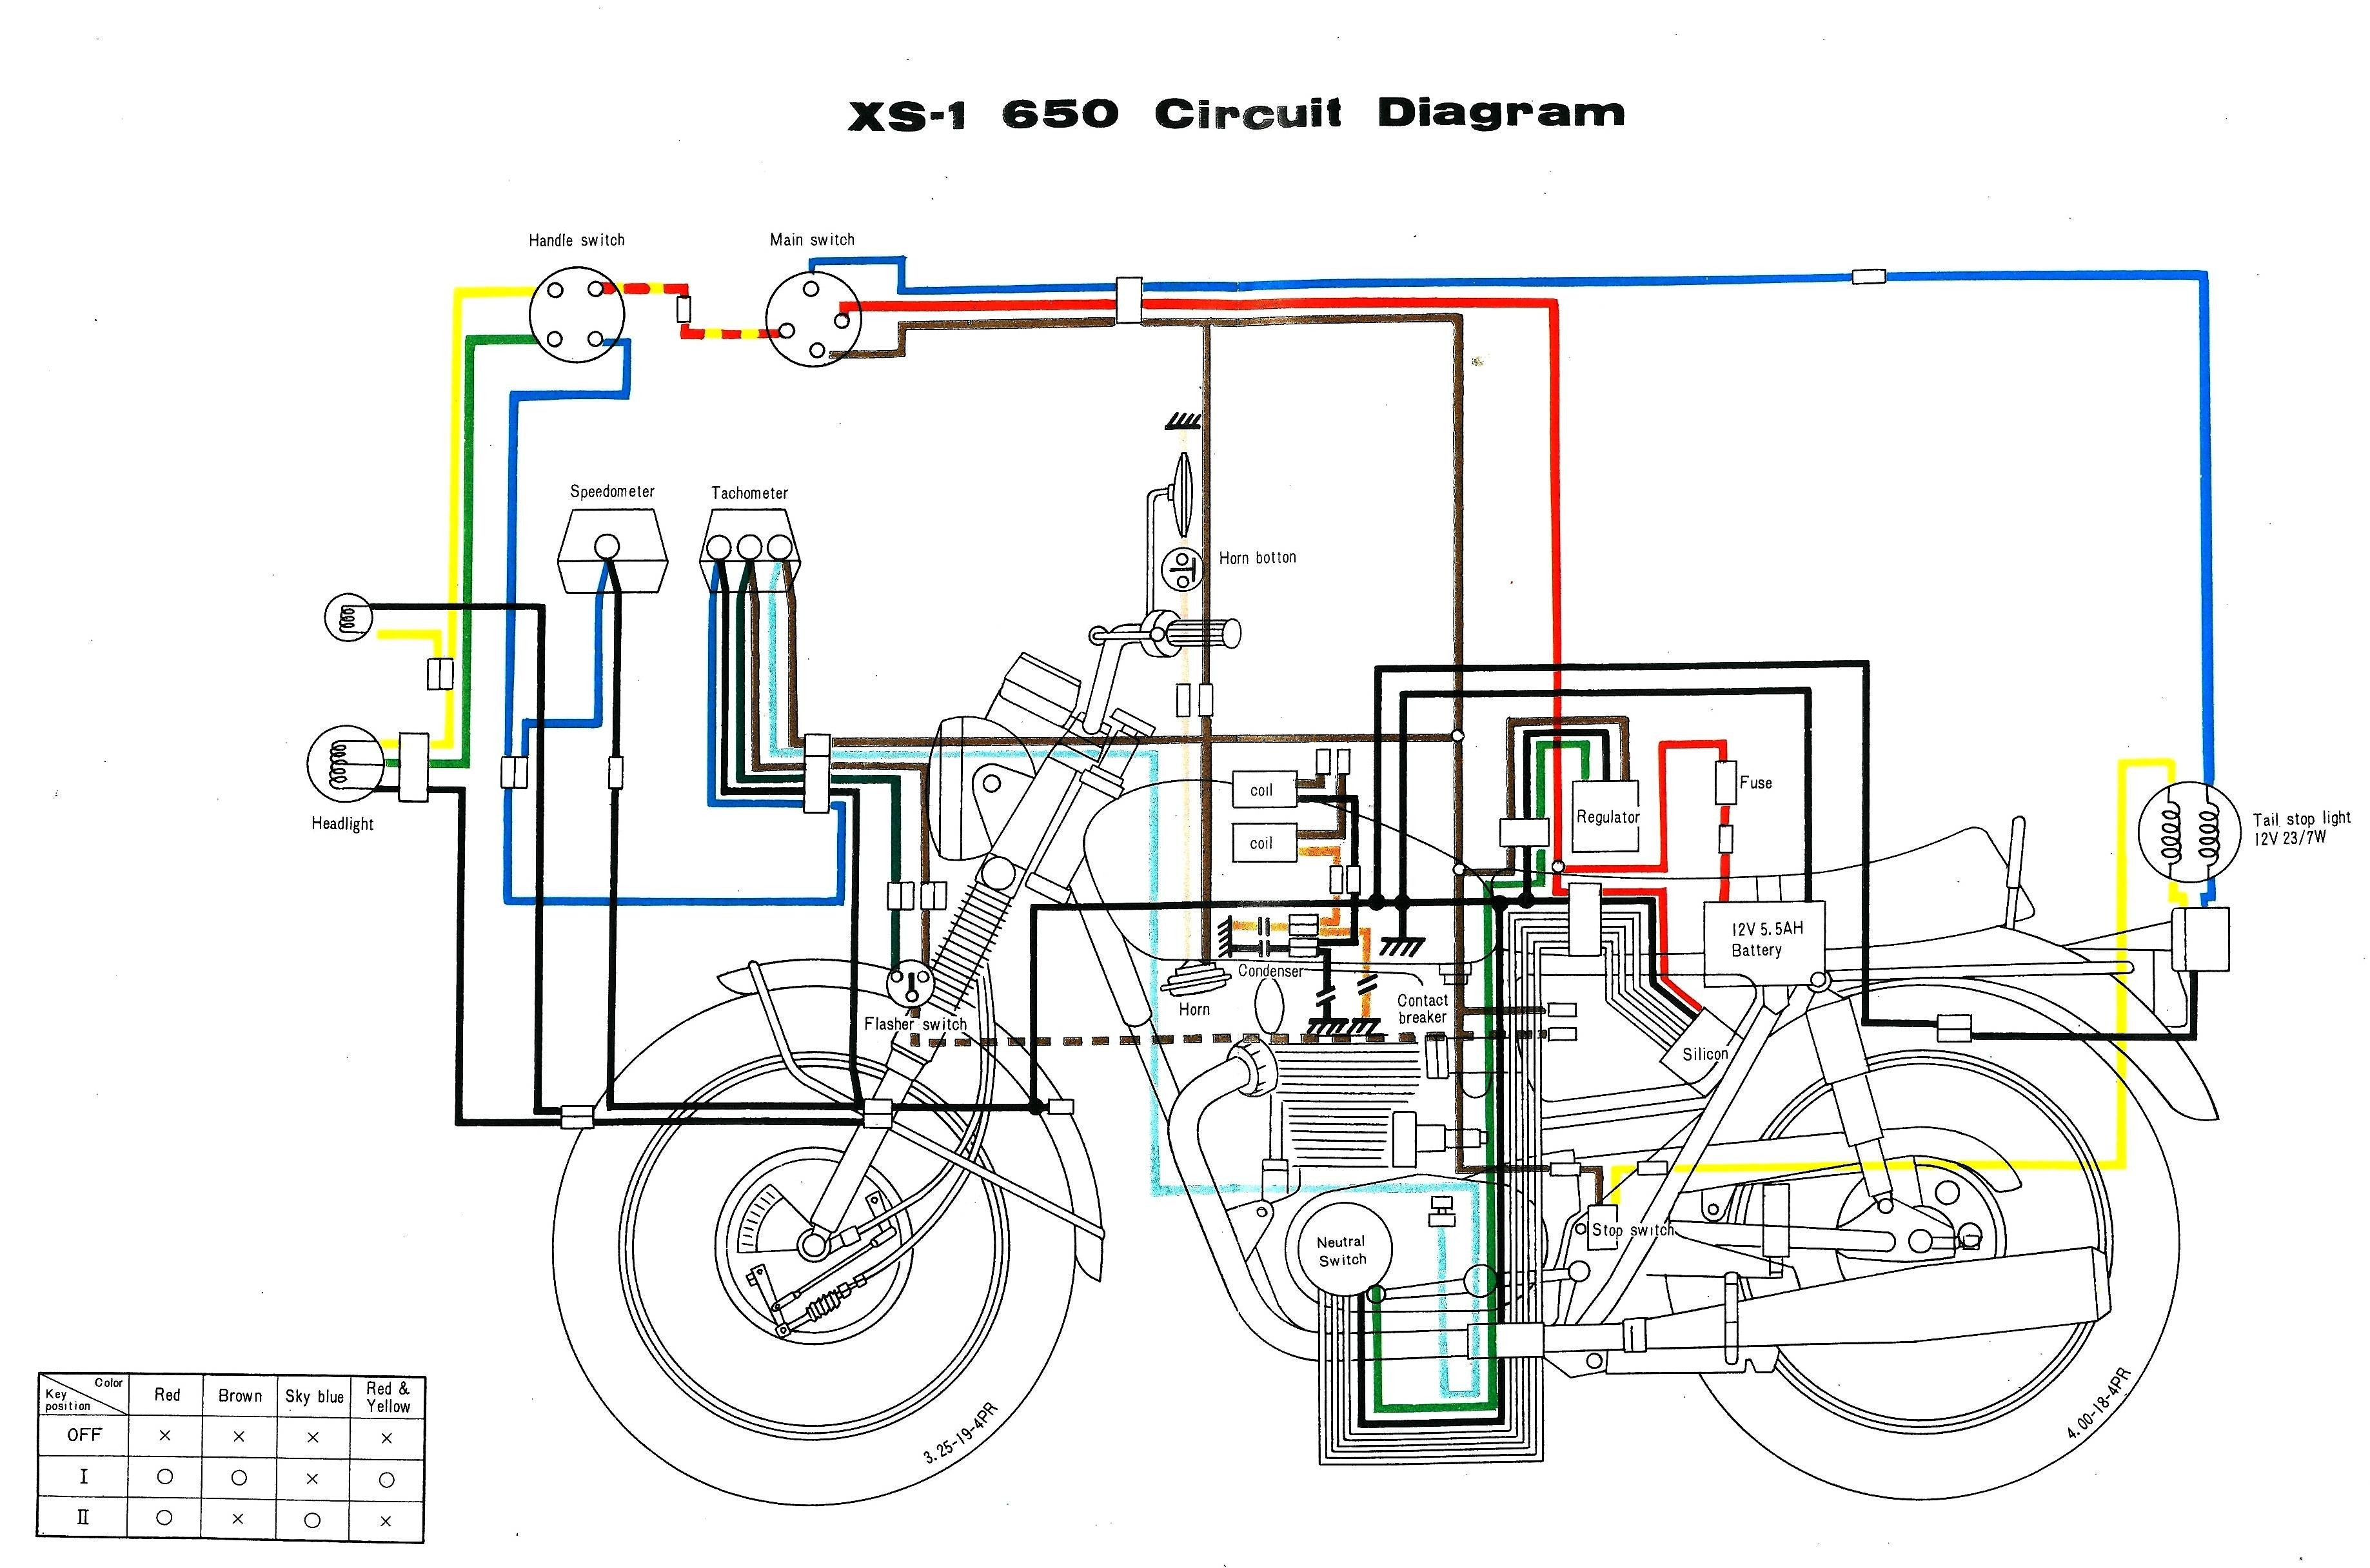 Electrical Engineering Wiring Diagram Wiring What S A Schematic Pared to Other Diagrams Of Electrical Engineering Wiring Diagram